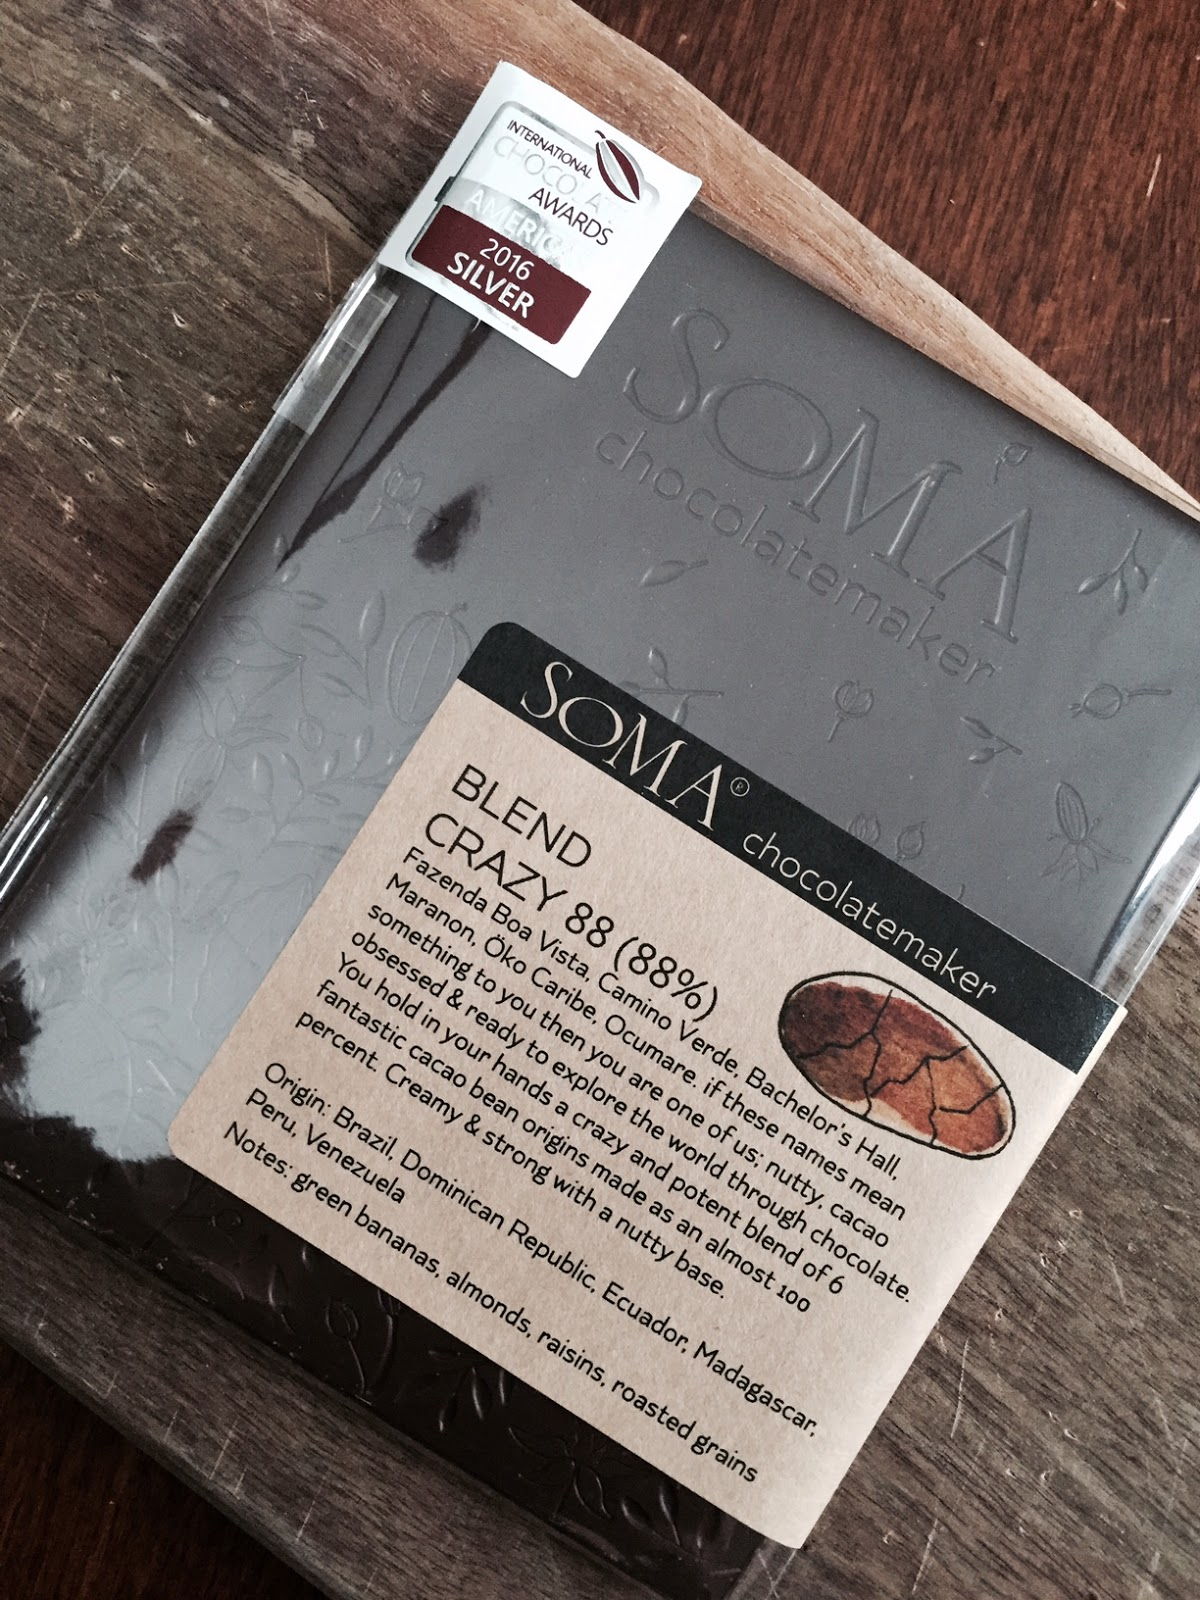 The Ultimate Chocolate Blog: Chocolate of the Day (Day 4): Soma's